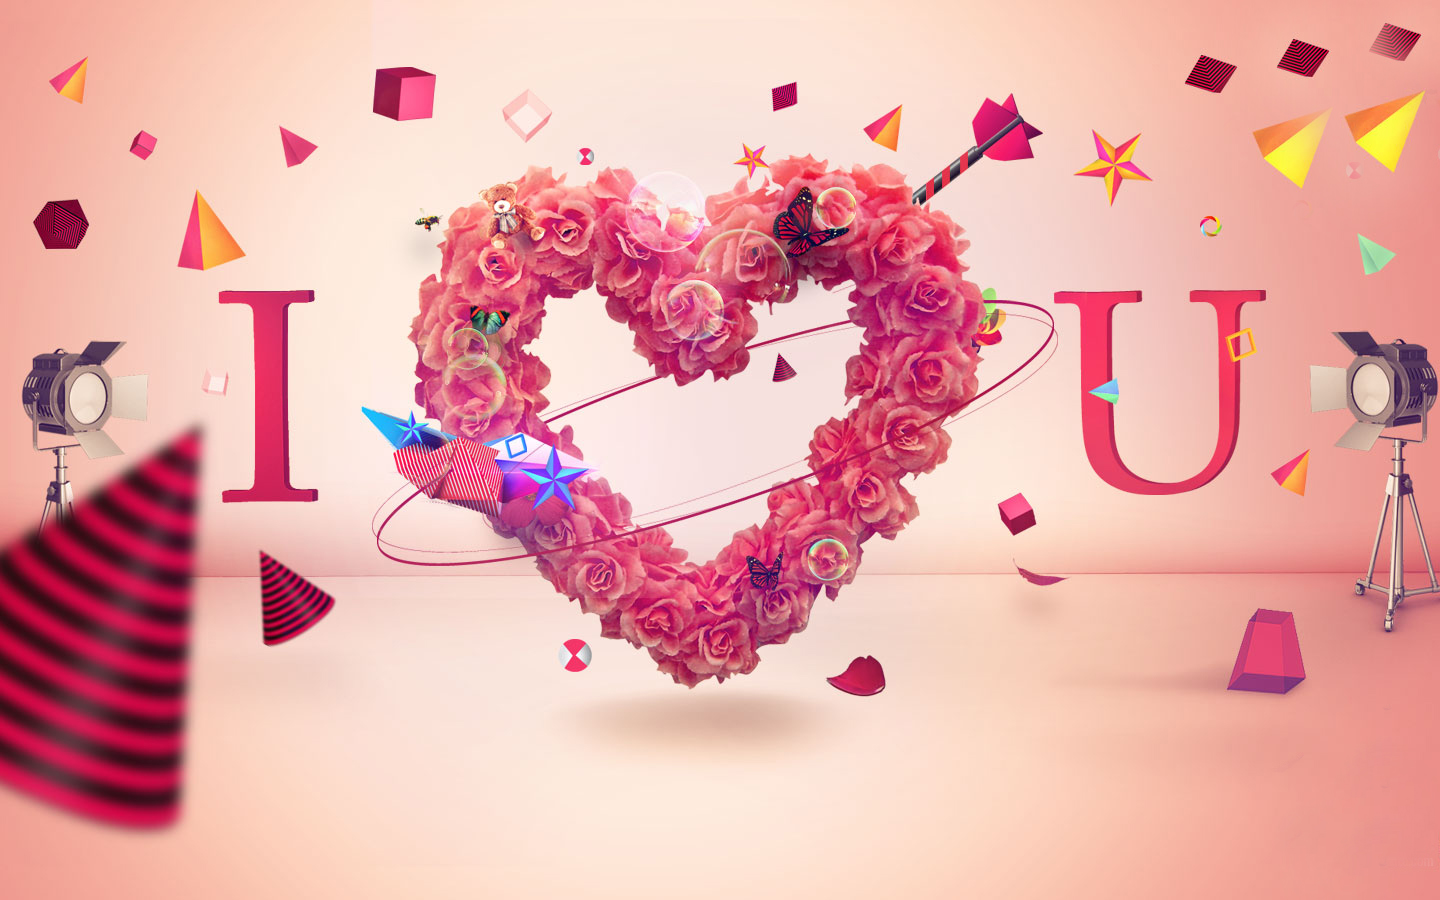 Beautiful Love Wallpaper Hd: Ravishment: Beautiful Love HD Wallpapers Free Download In